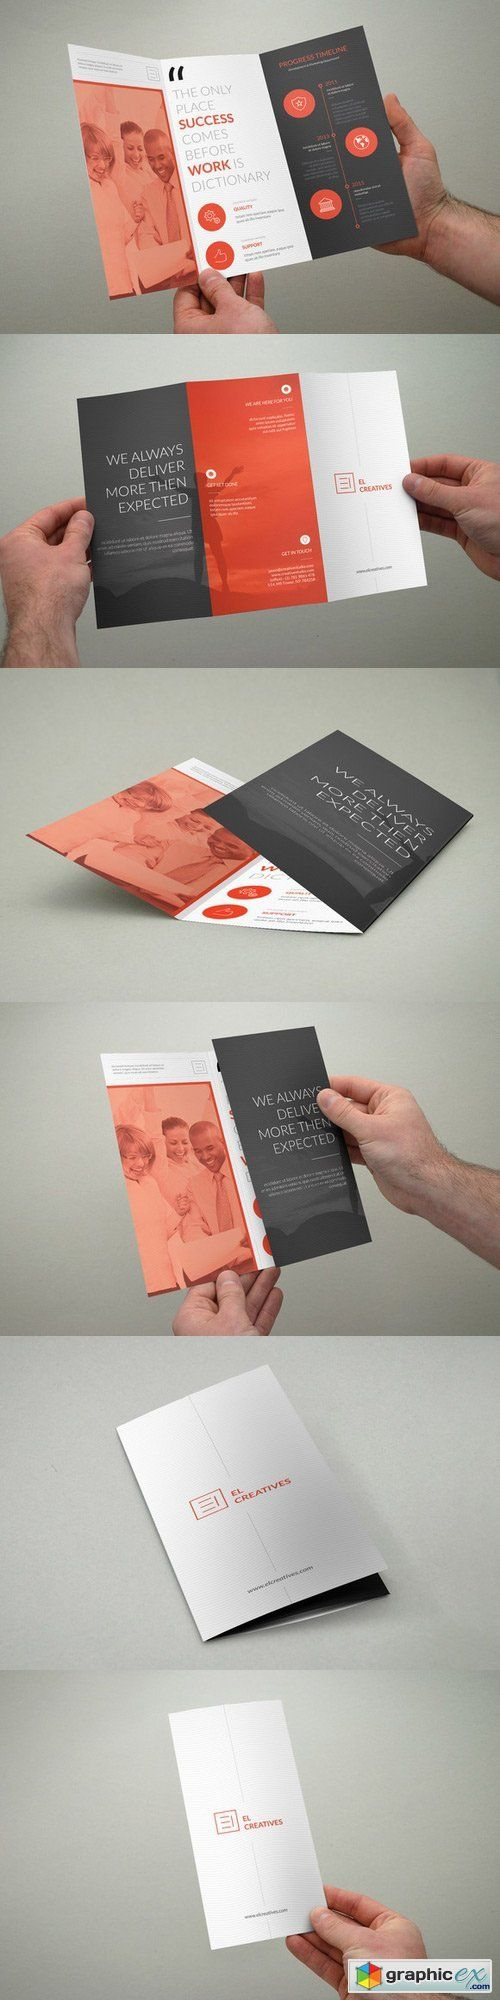 Brochures the perfect hand job